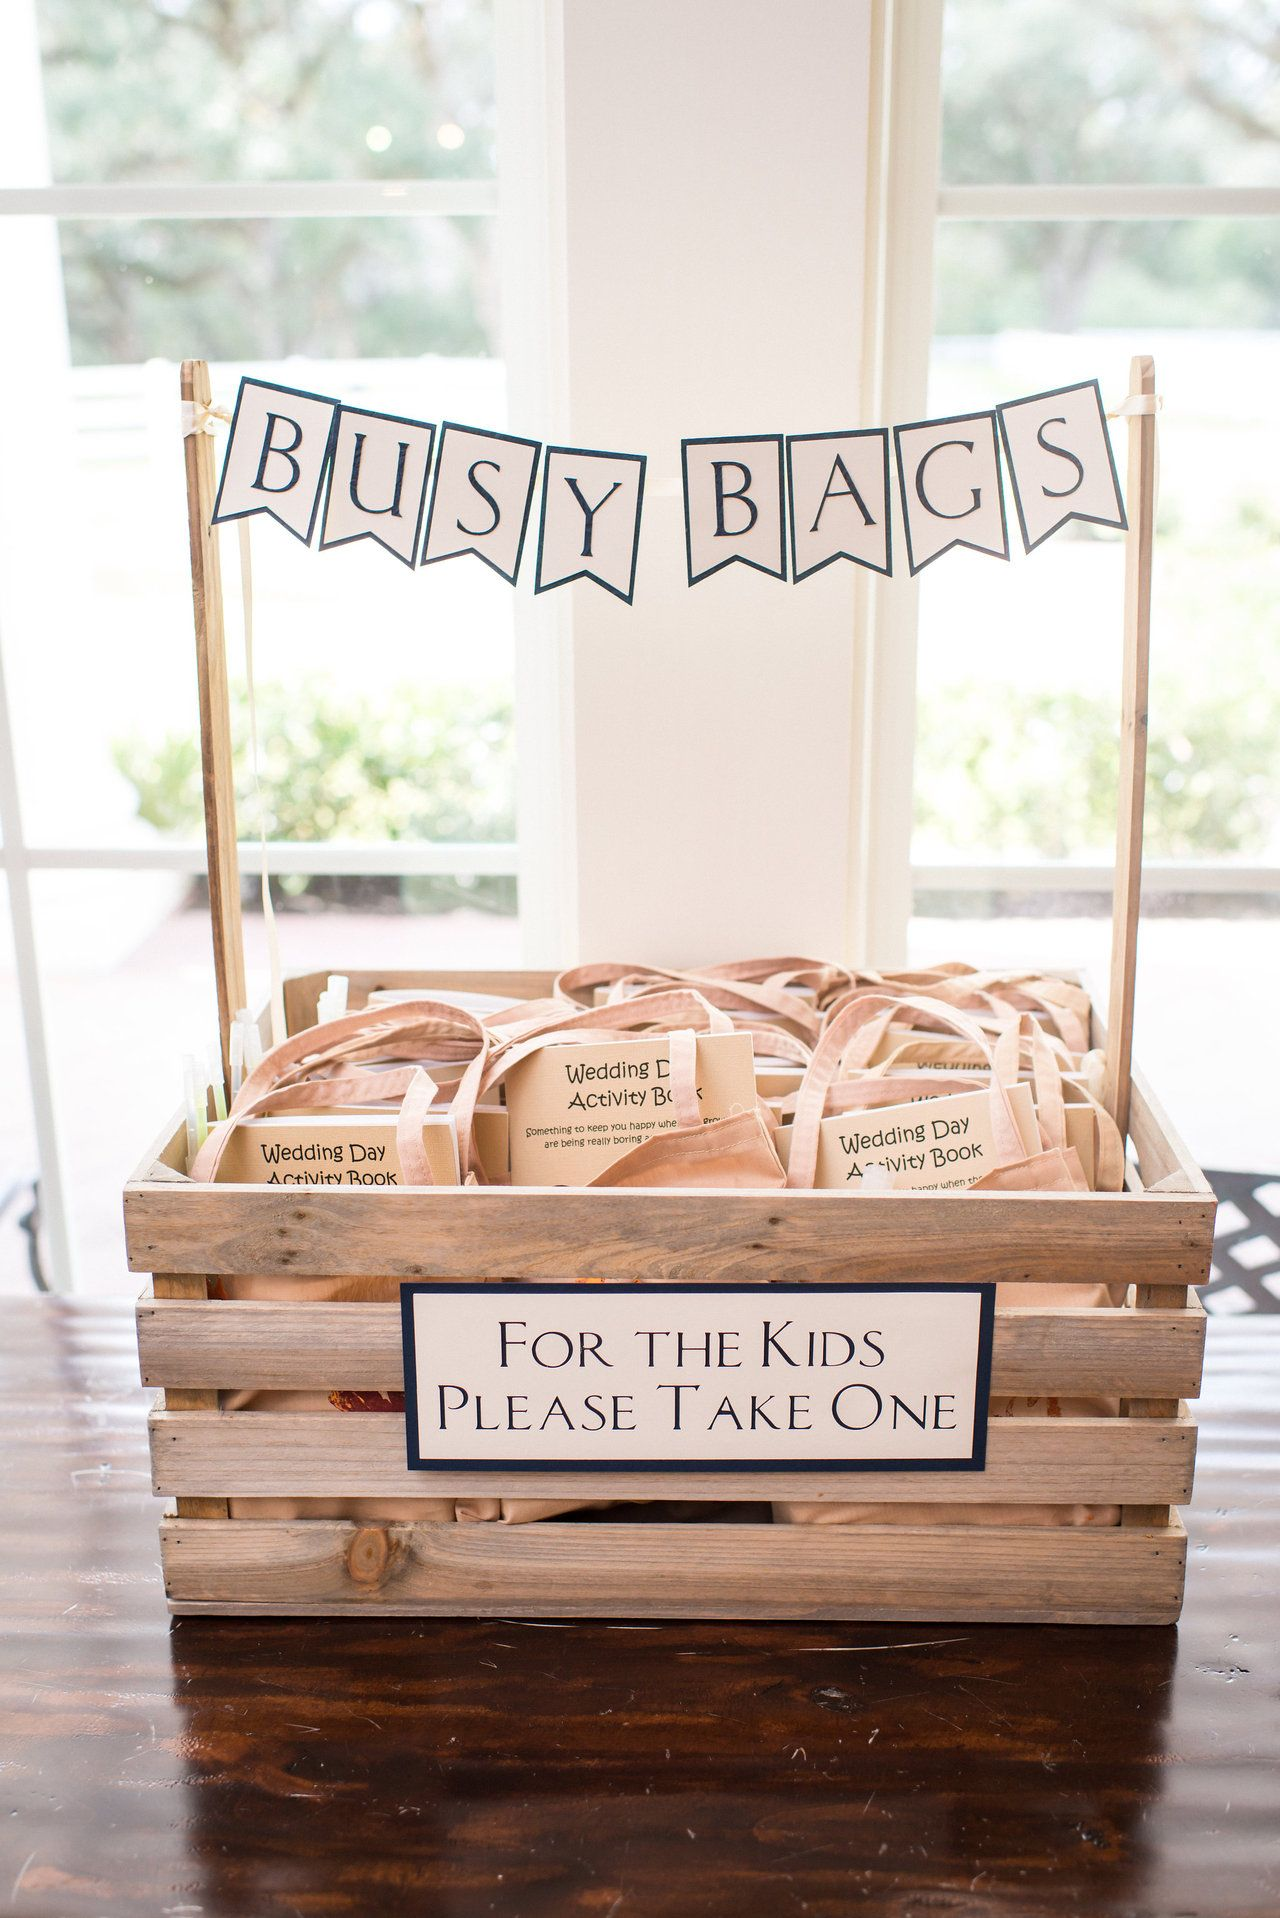 Such A Cute Wedding Idea For Your Guests Who Are Children Busy Bags Will Keep Them Busy D Wedding Reception Favors Wedding With Kids Creative Wedding Favors